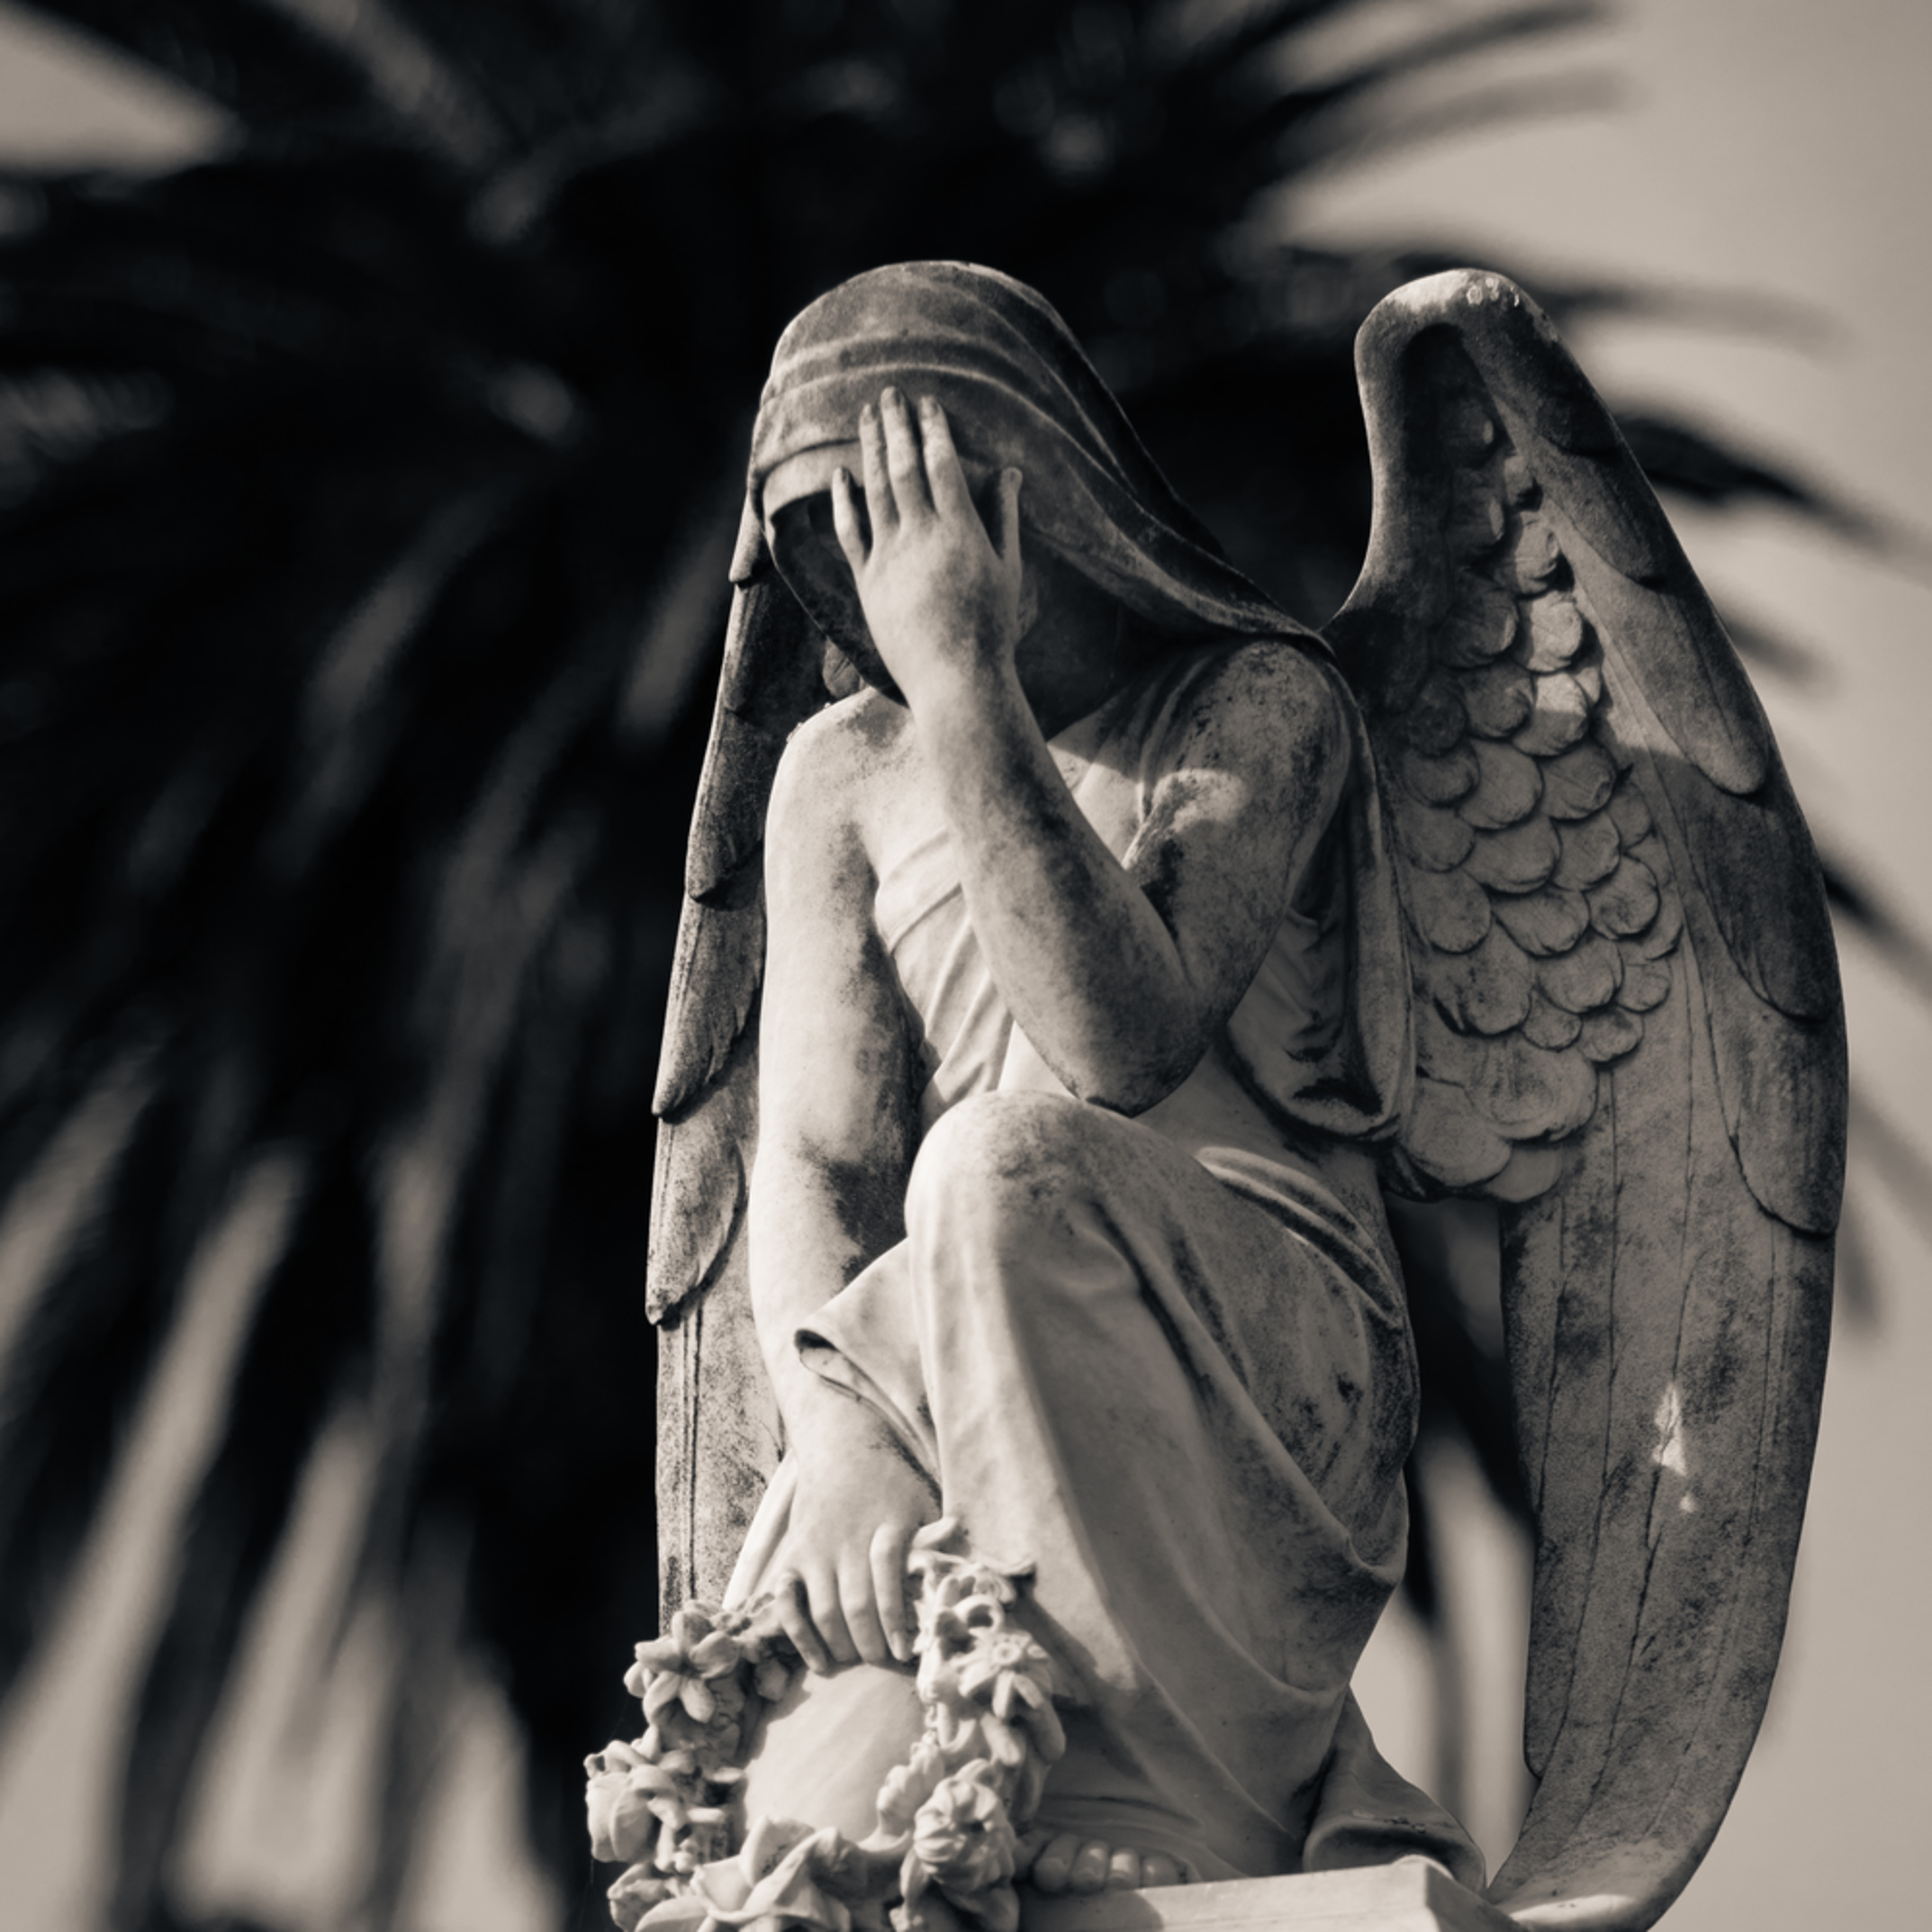 Weeping angel and fan palm ipc ter302